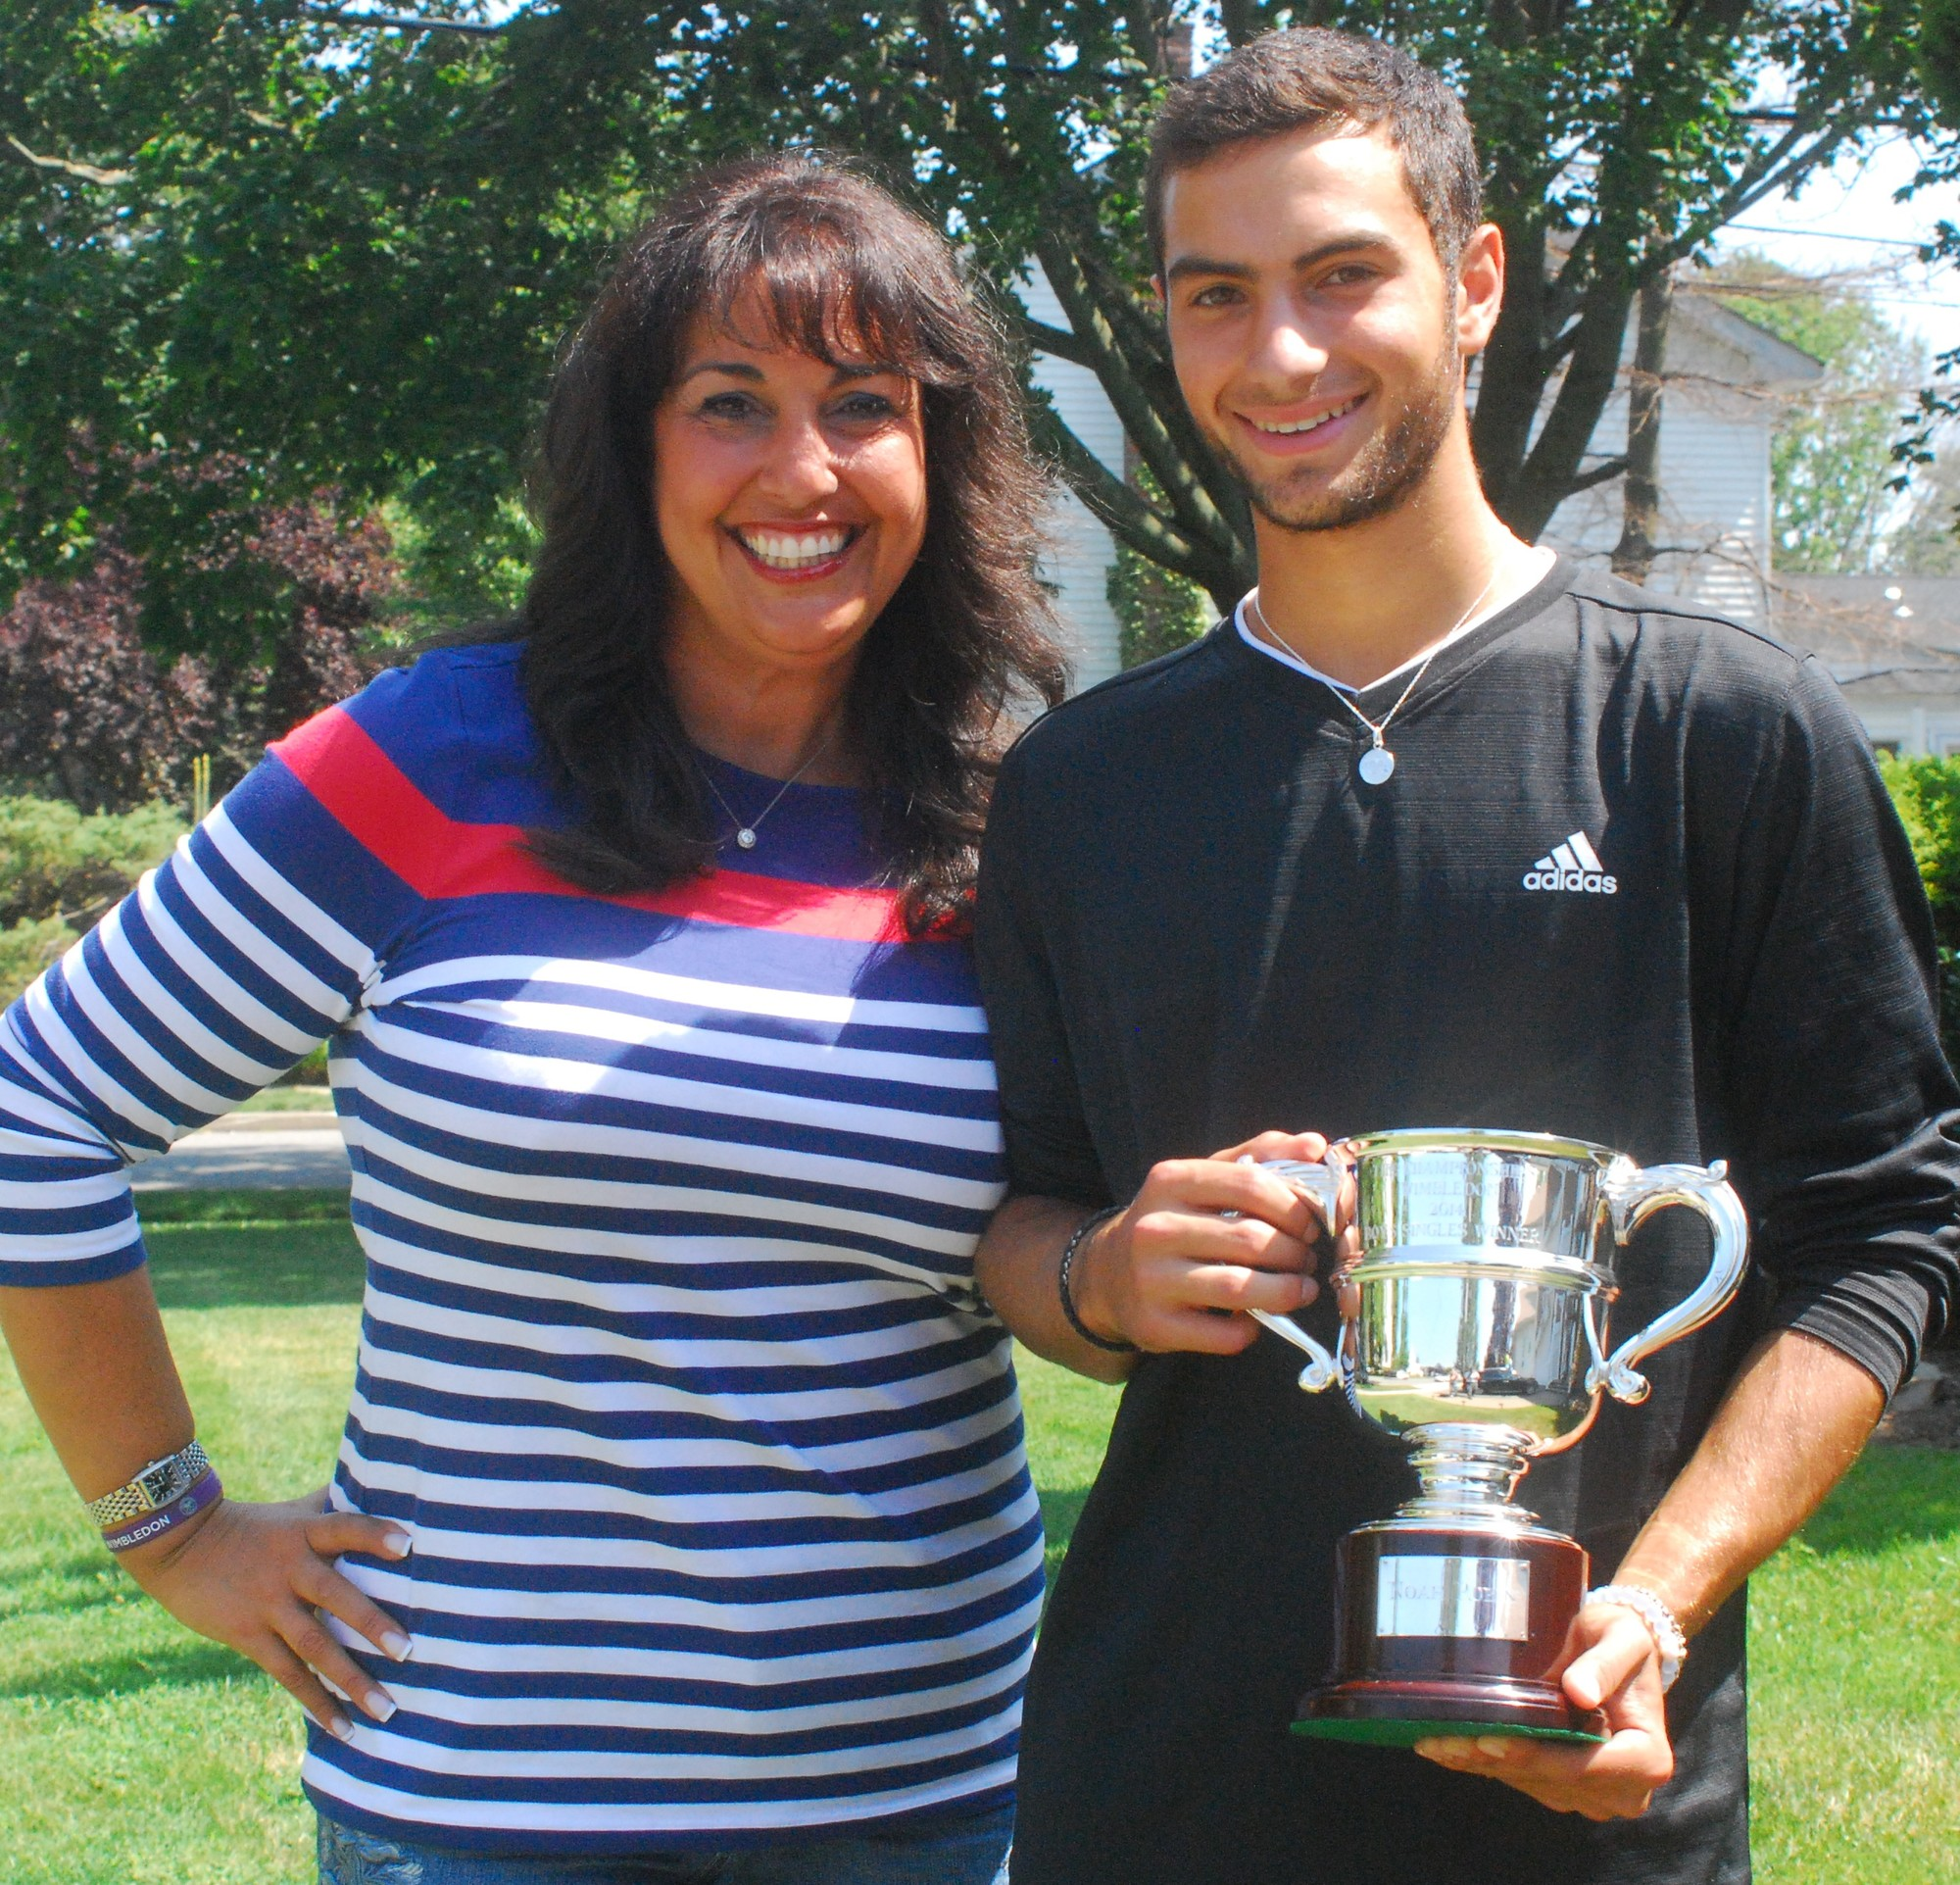 Rubin at home in Merrick on Monday with his mom, Melanie, and his Wimbledon trophy.